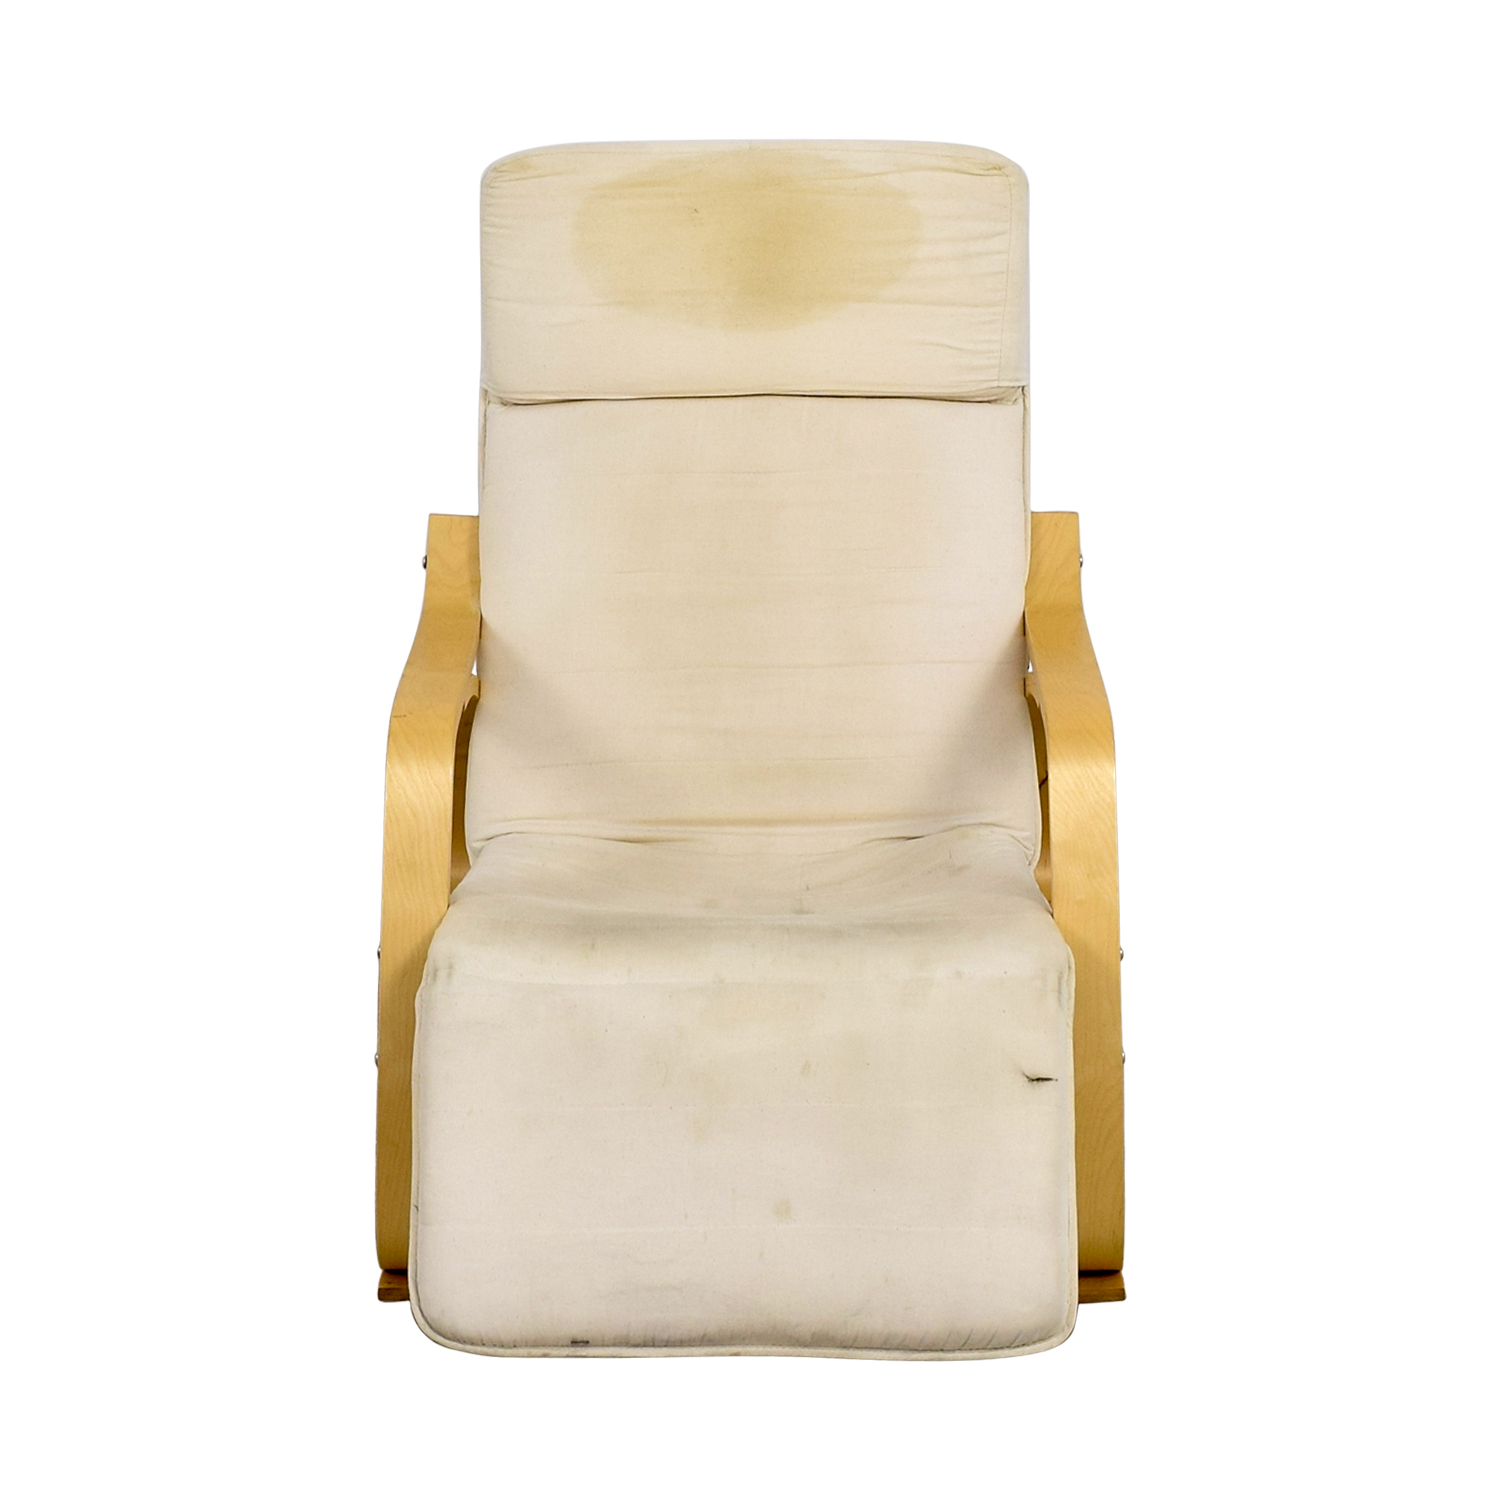 White Rocking Chair with Recliner for sale